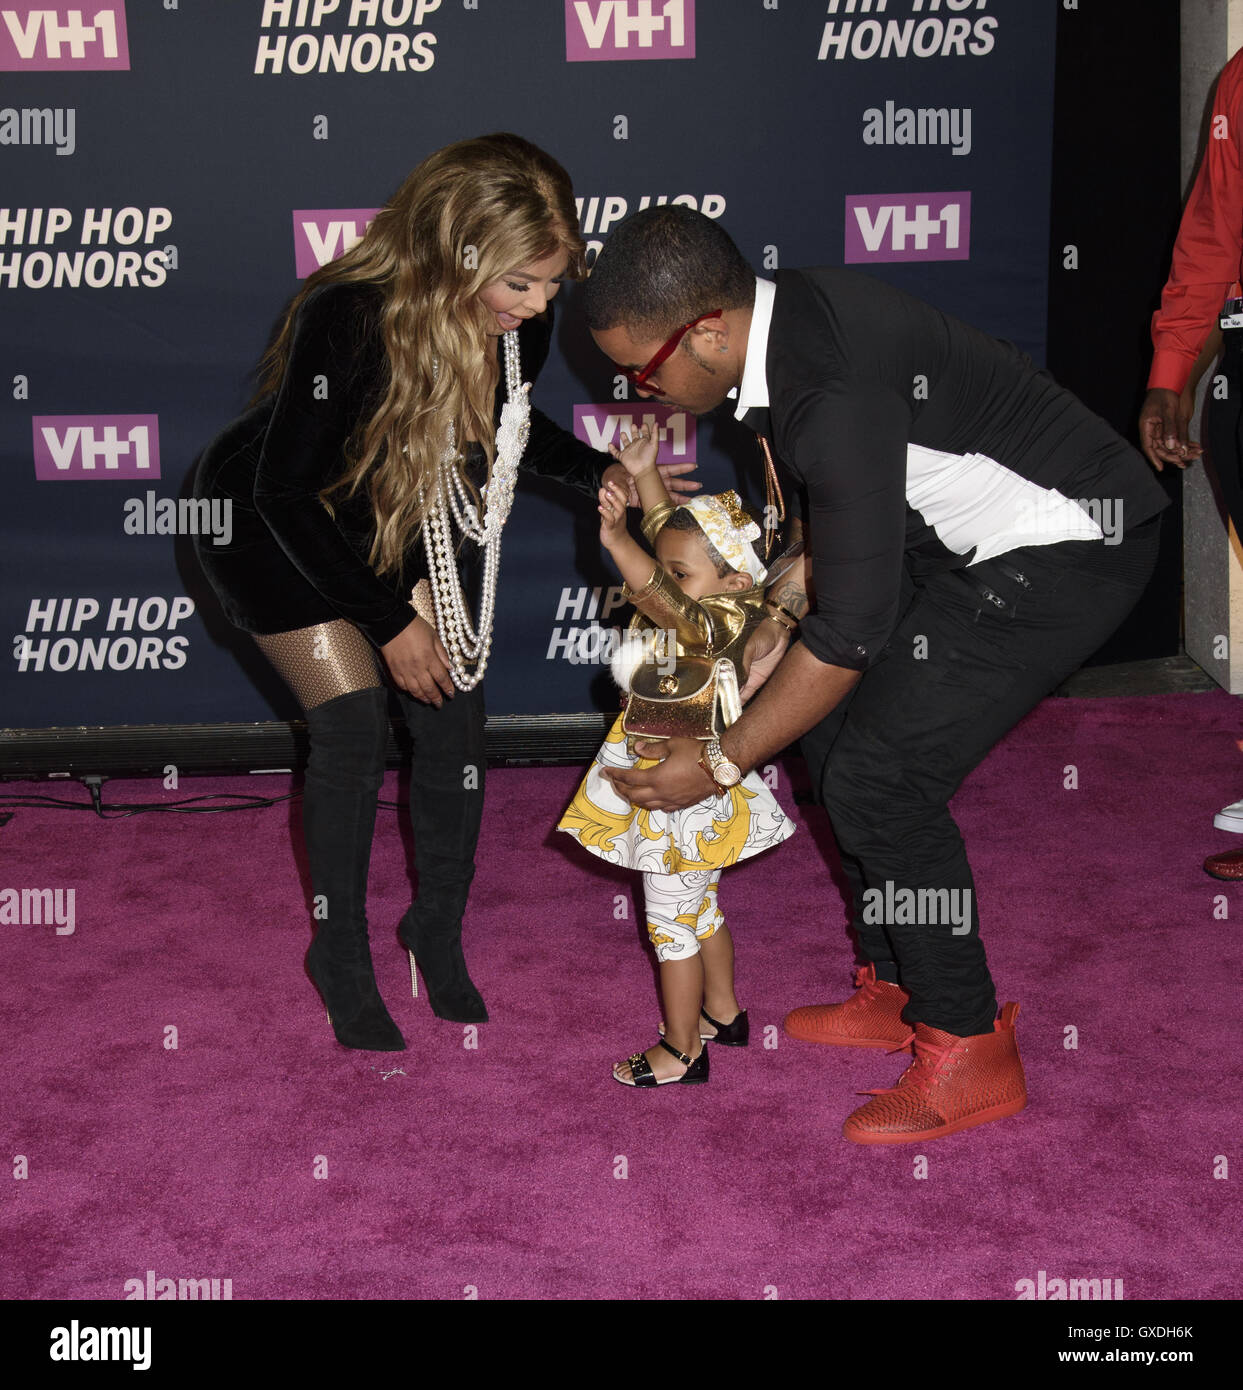 Lil Kim At Vh1 Hip Hop Honors All Hail The Queens Featuring Lil Stock Photo Alamy Lil' kim has a lil' princess of her very own! https www alamy com stock photo lil kim at vh1 hip hop honors all hail the queens featuring lil kim 119542155 html